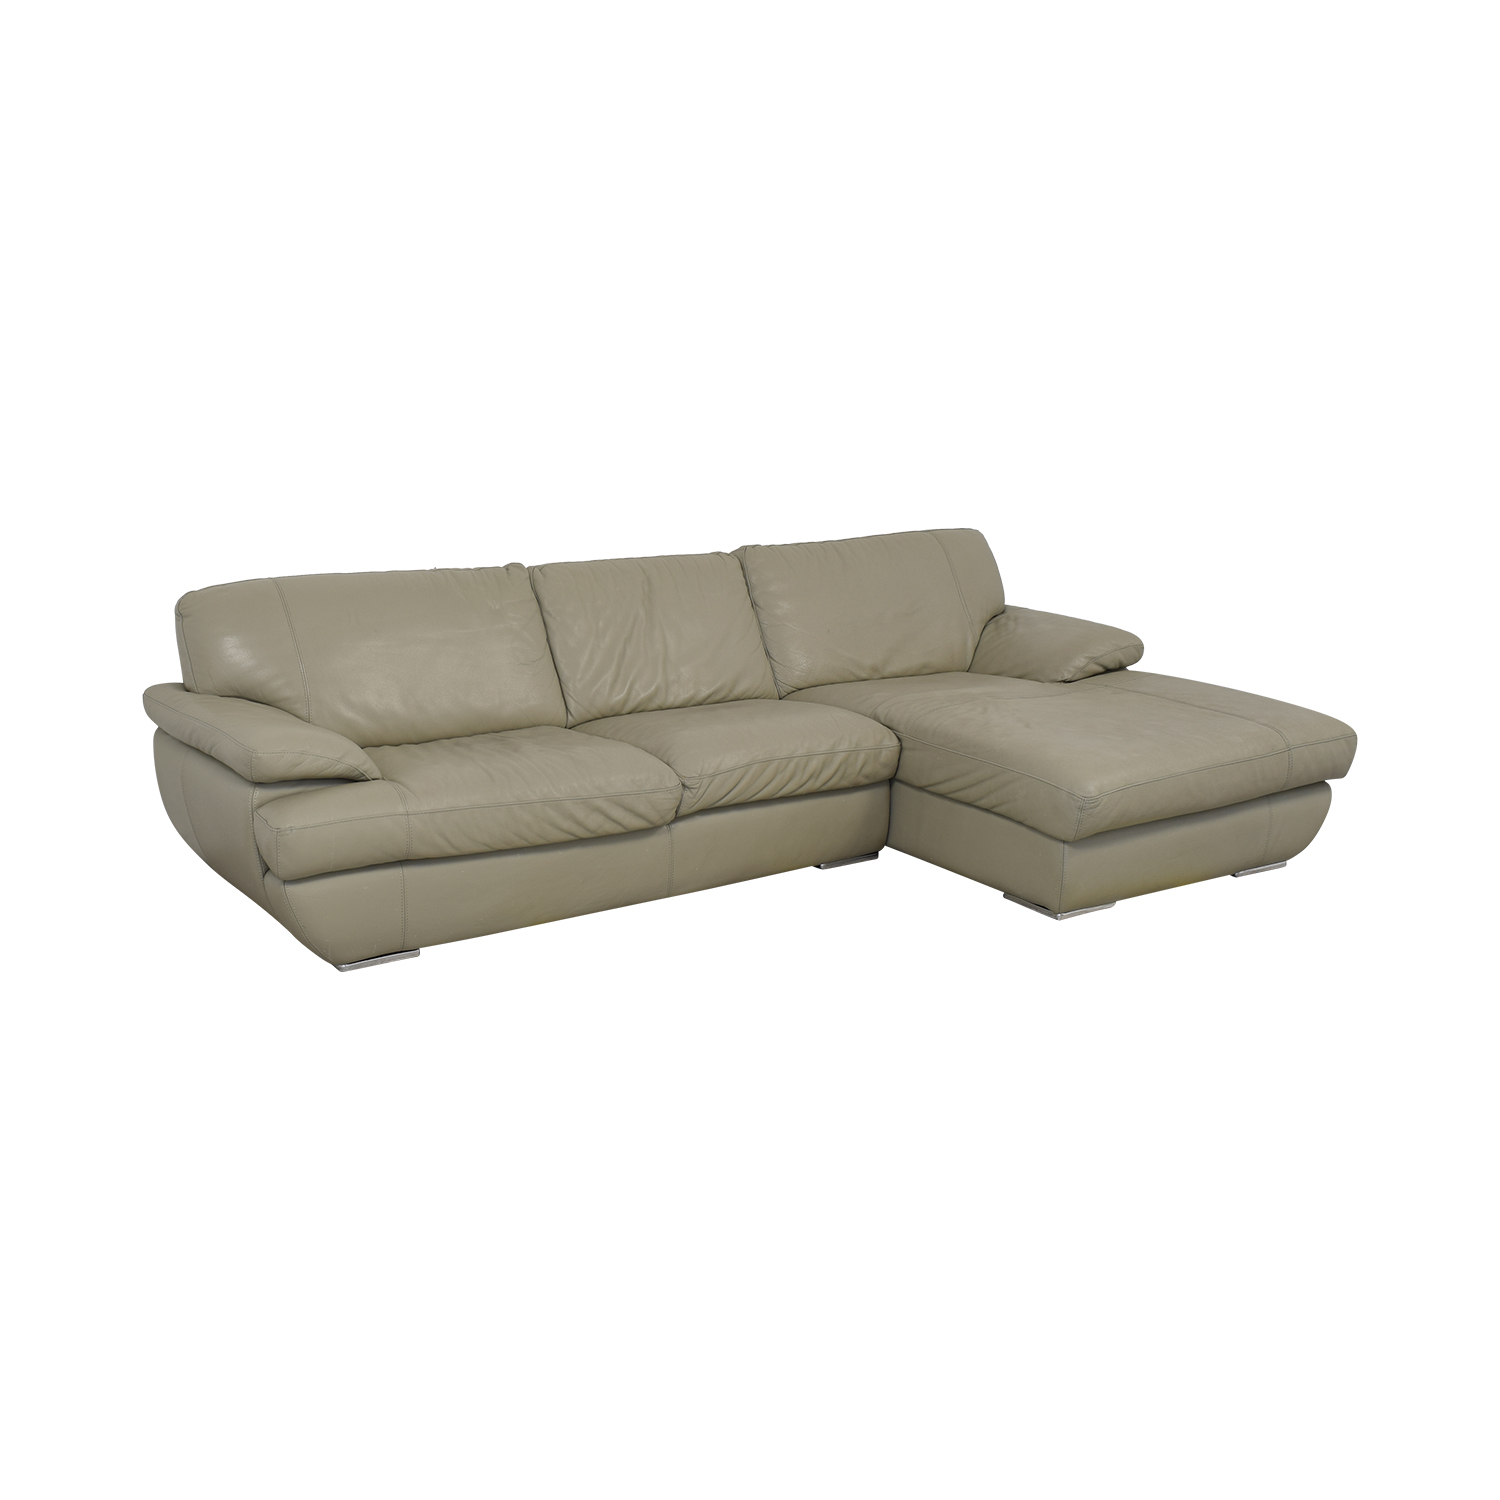 Bloomingdale's Bloomingdale's Gray Leather Sofa second hand